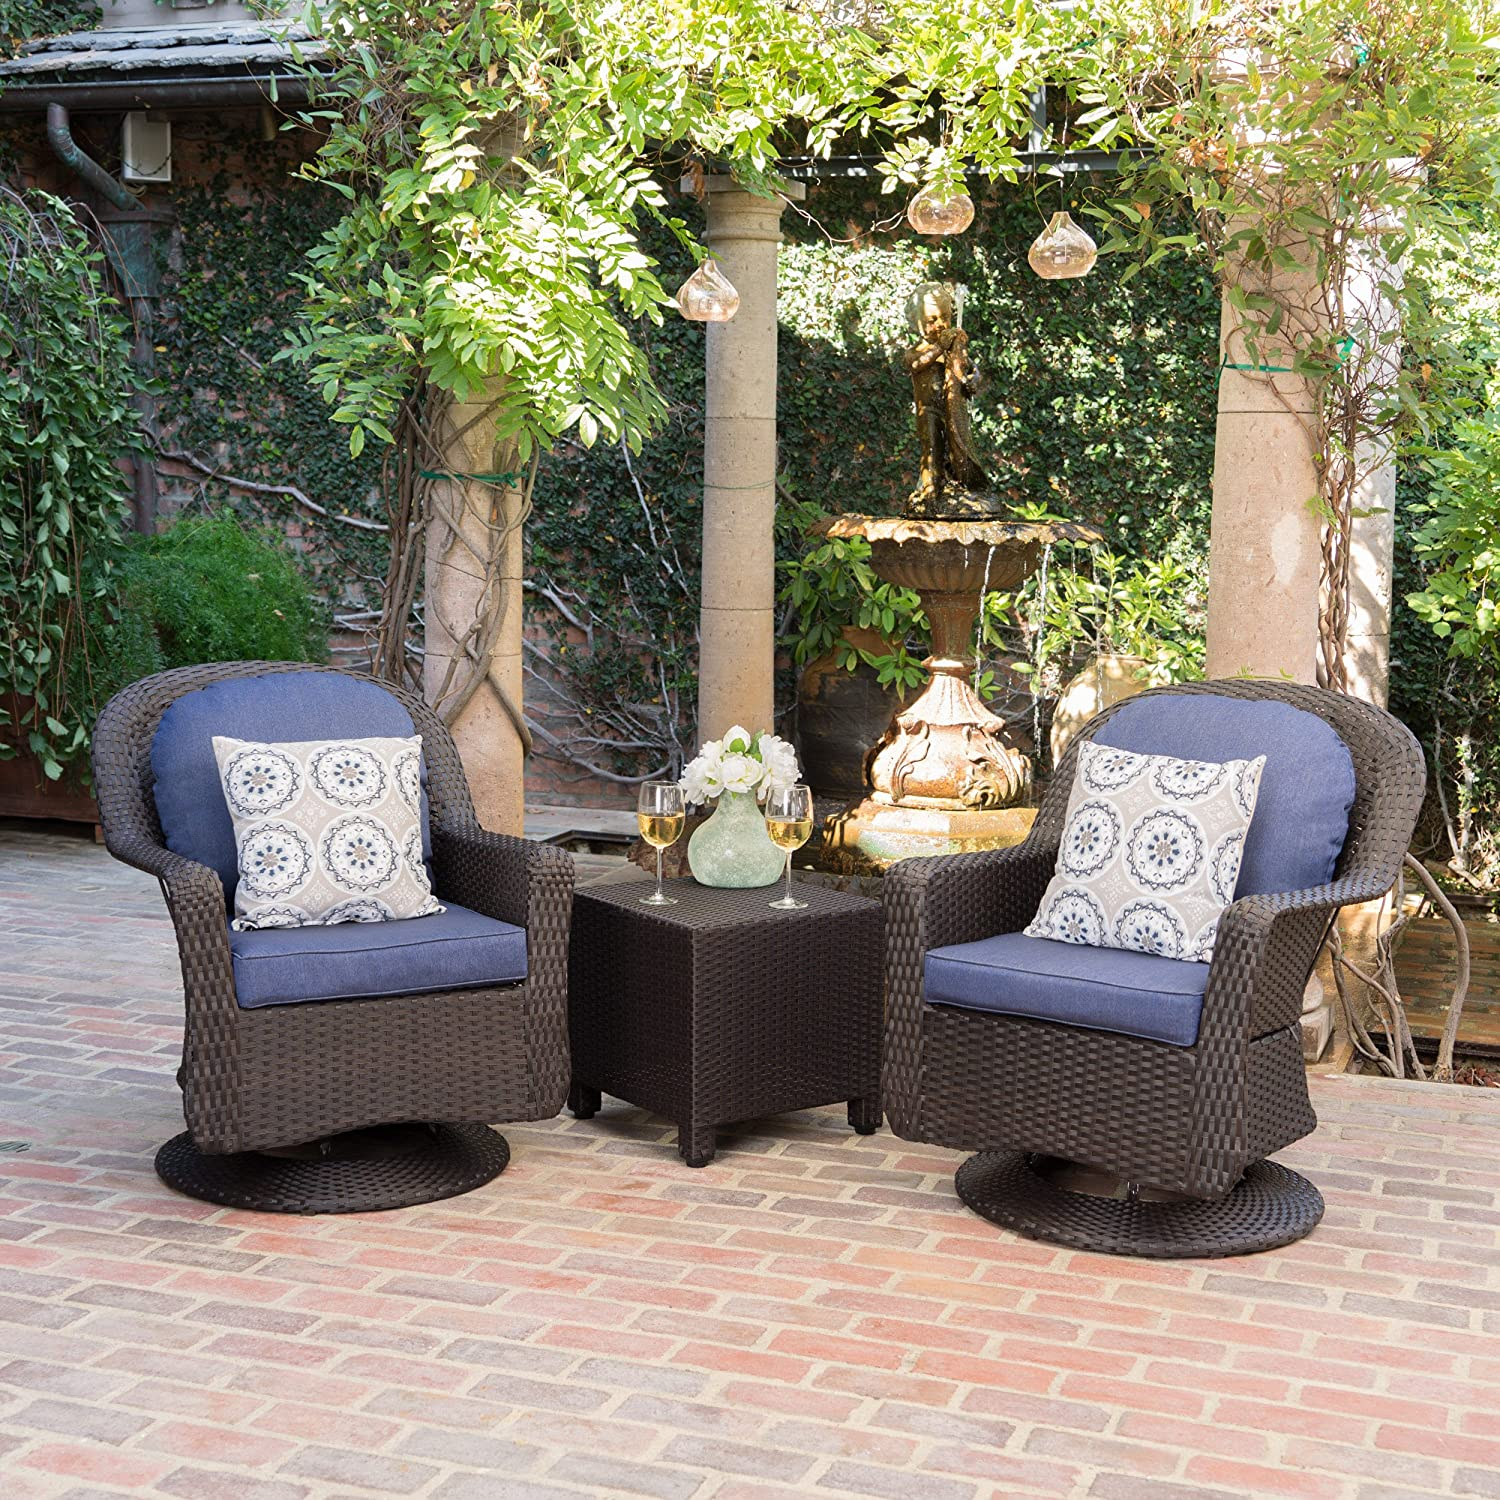 Christopher Knight Home Linsten Outdoor Dark Brown Wicker Swivel Club Chairs and Side Table Set with Navy Blue Water Resistant Cushions